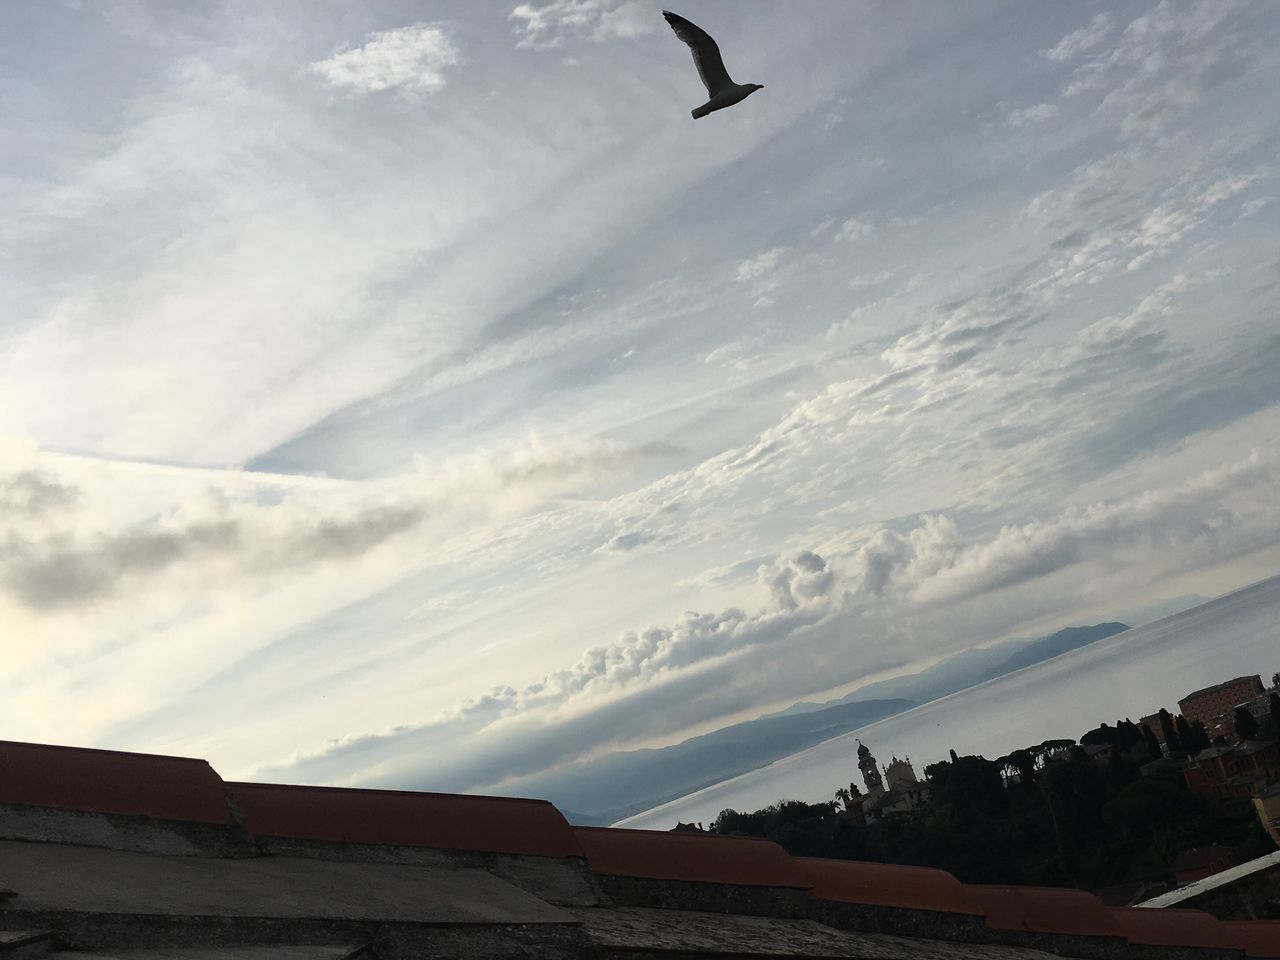 cloud - sky, sky, built structure, architecture, building exterior, low angle view, outdoors, flying, day, bird, roof, one animal, no people, nature, animal themes, beauty in nature